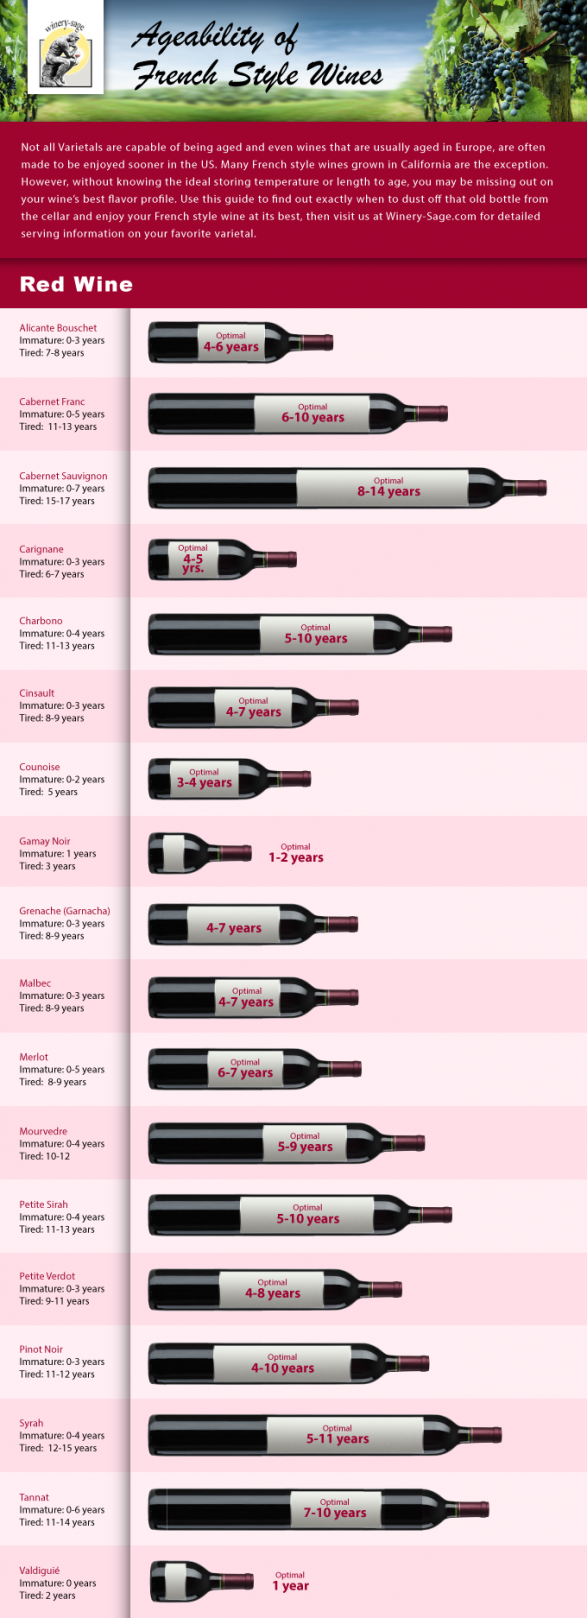 Ageability of French Red Wines